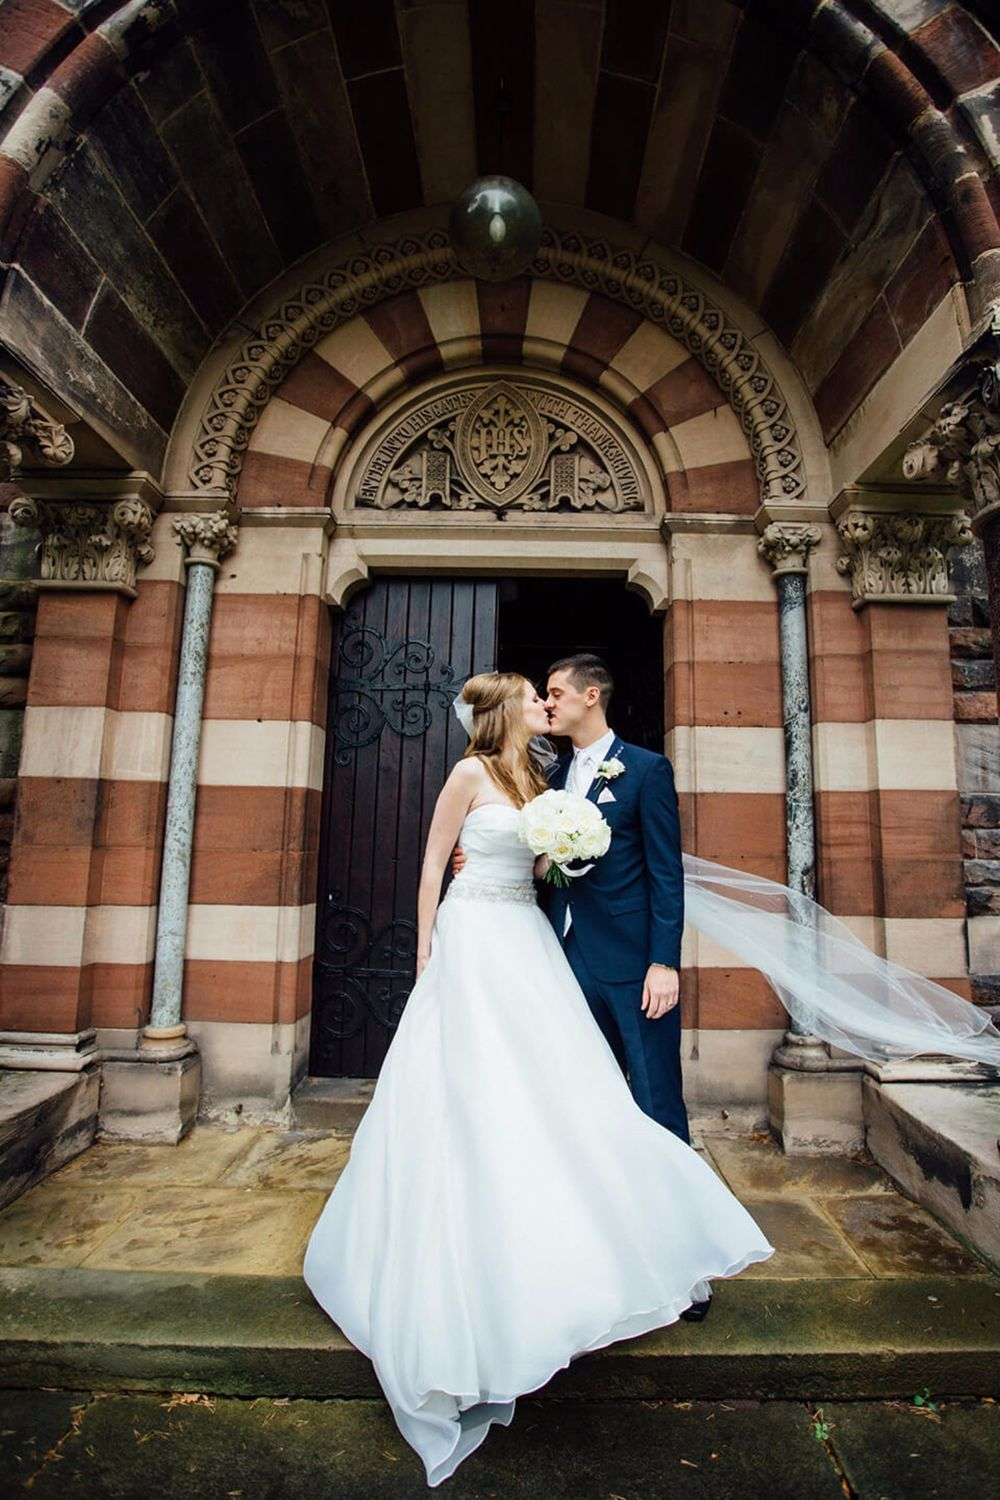 ELLESMERE PORT WEDDING PHOTOGRAPHER STEPHEN MCGOWAN 208.jpg